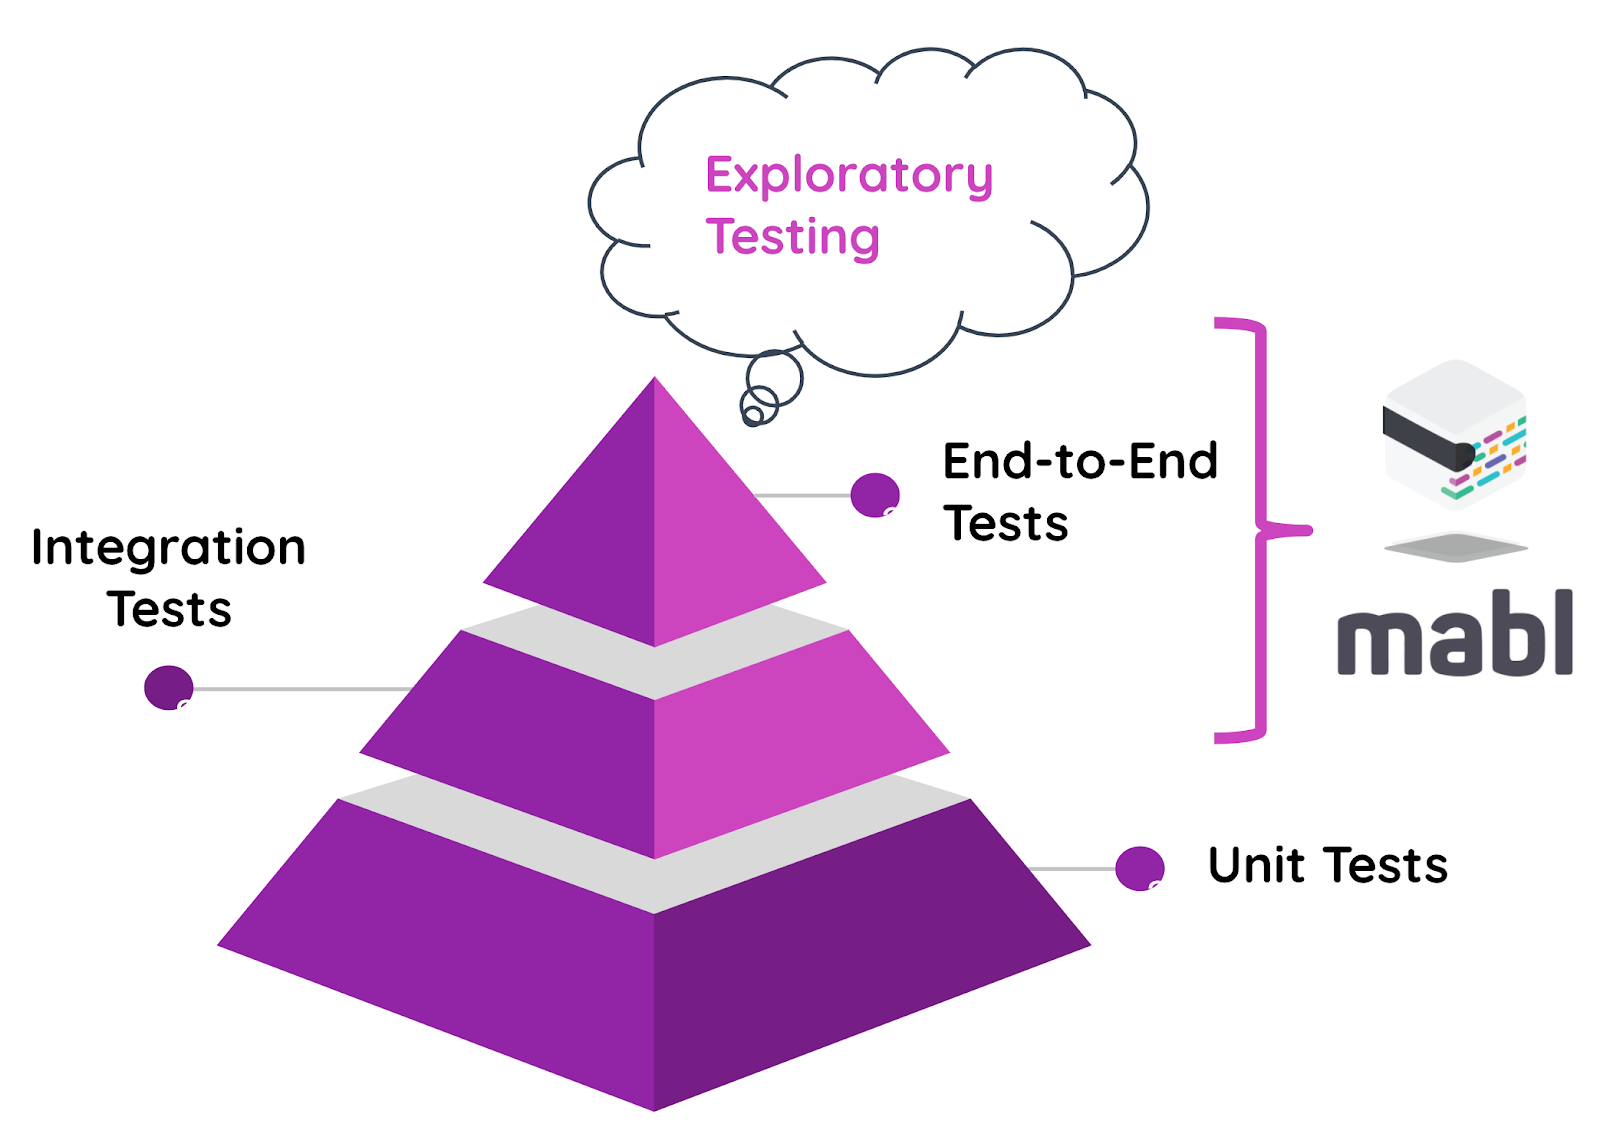 A diagram showing how to apply mabl to the testing pyramid.